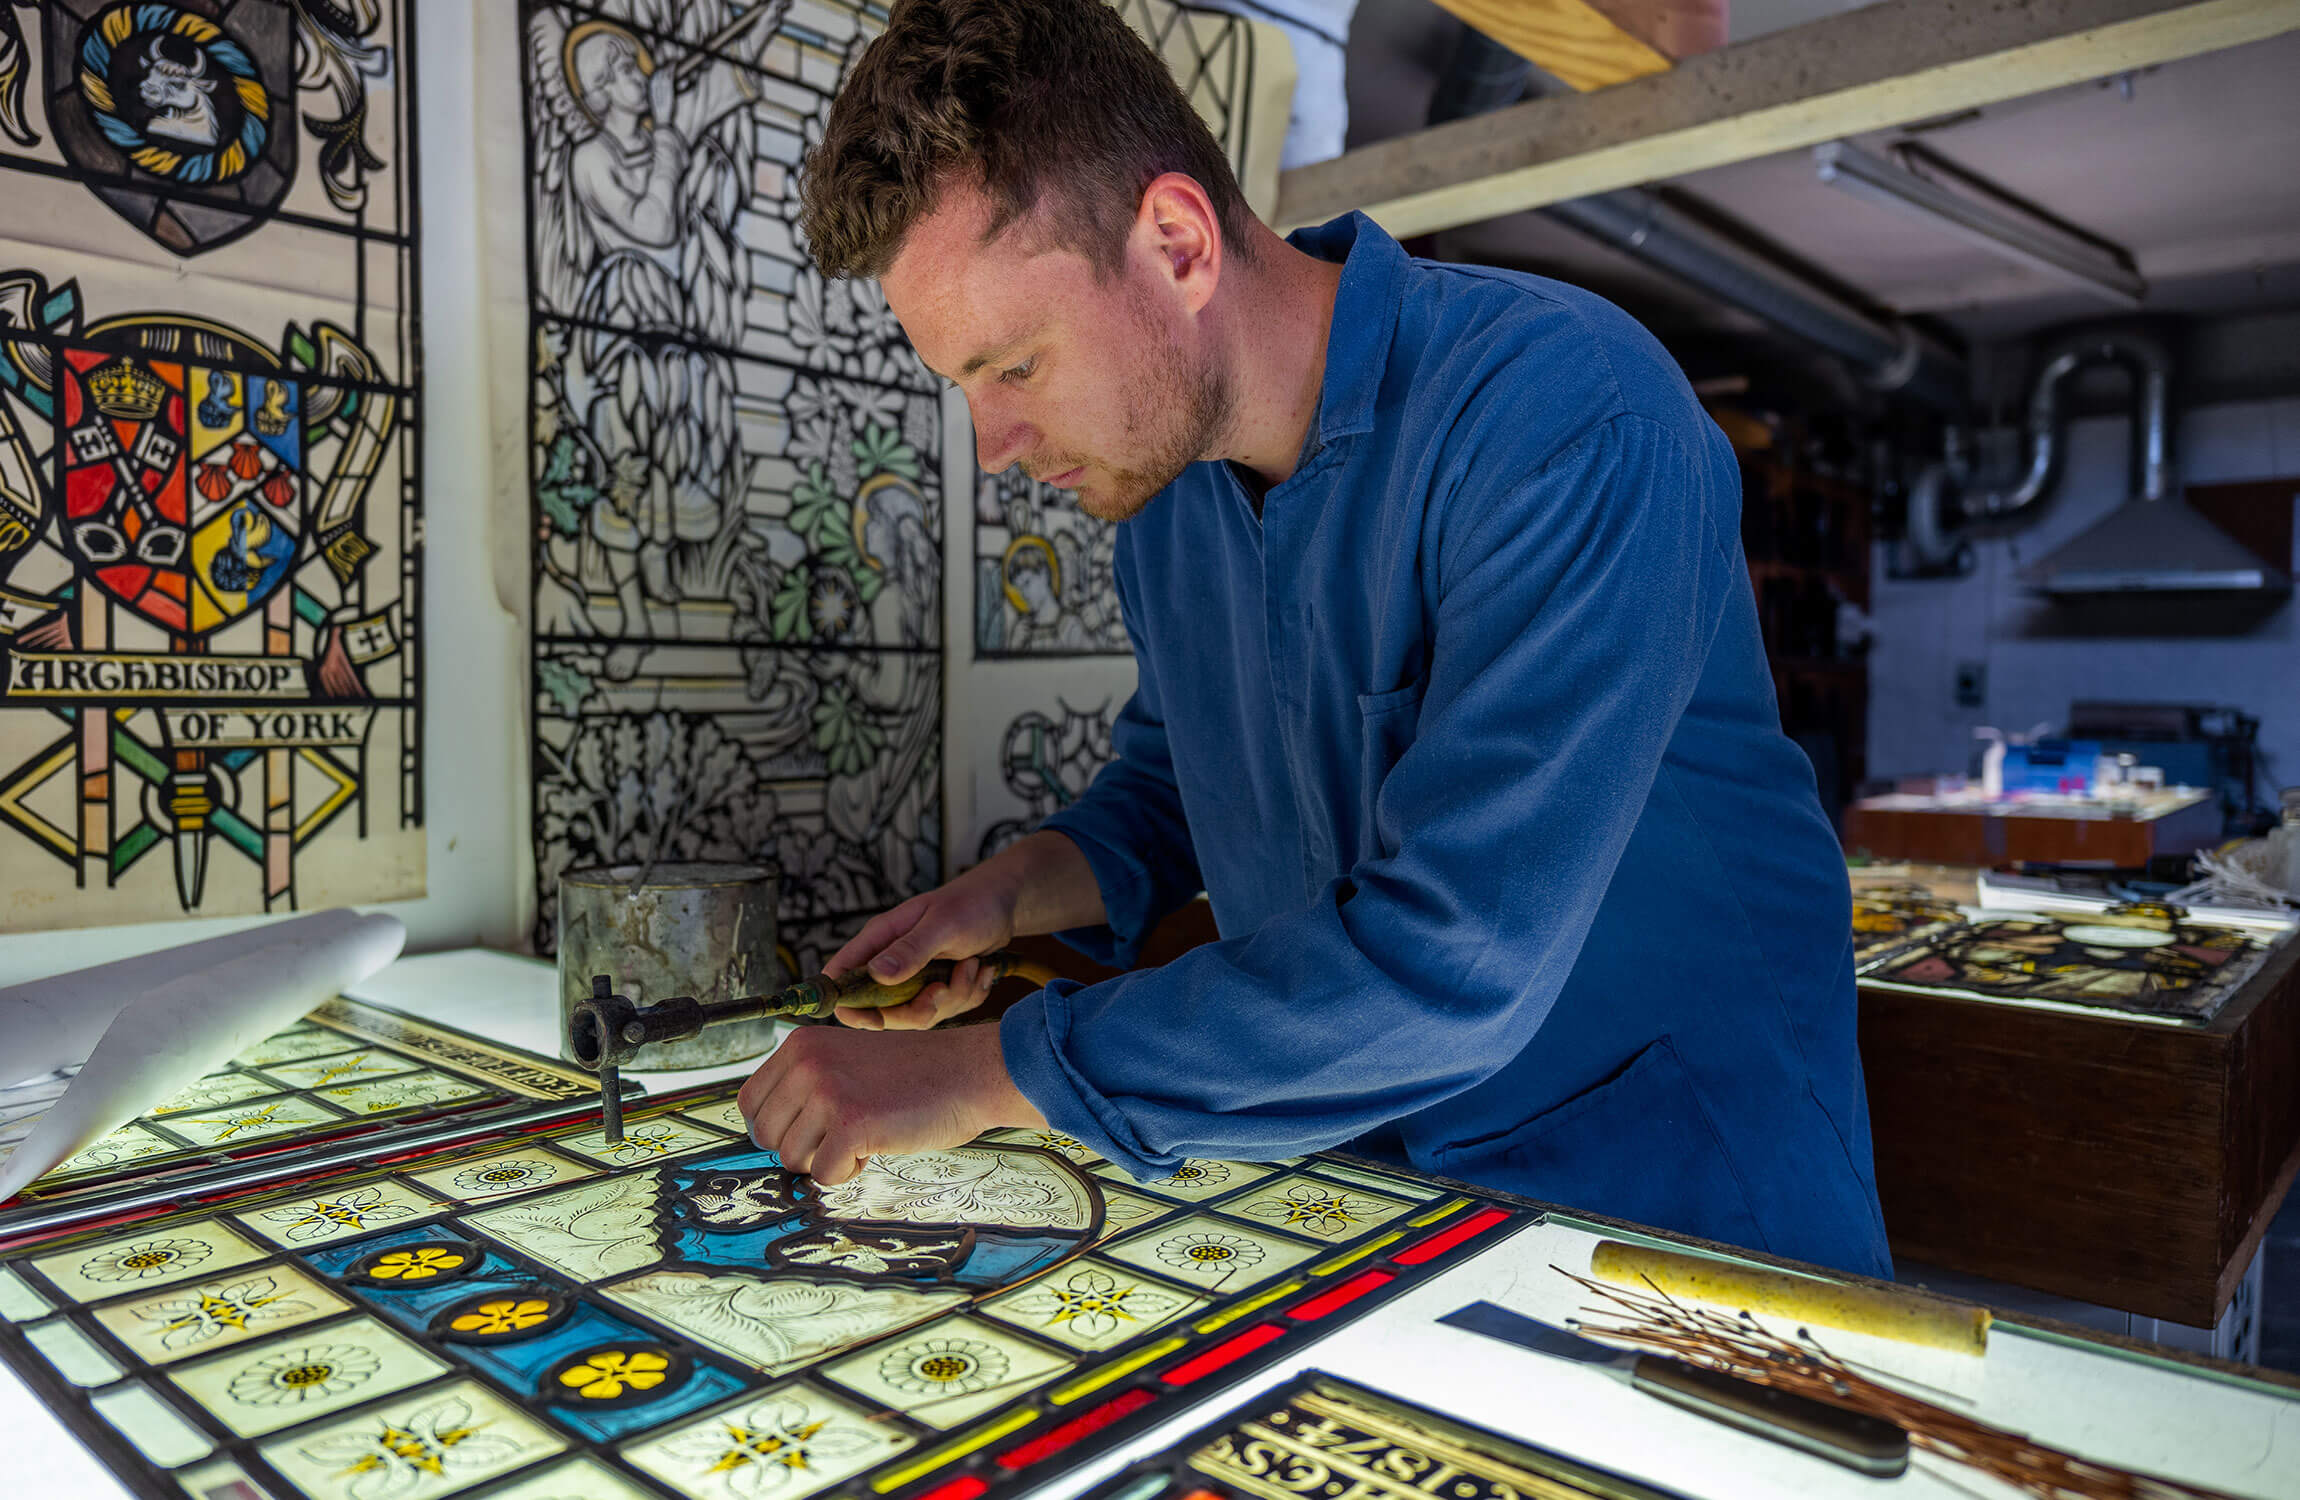 Stained glass artist at work